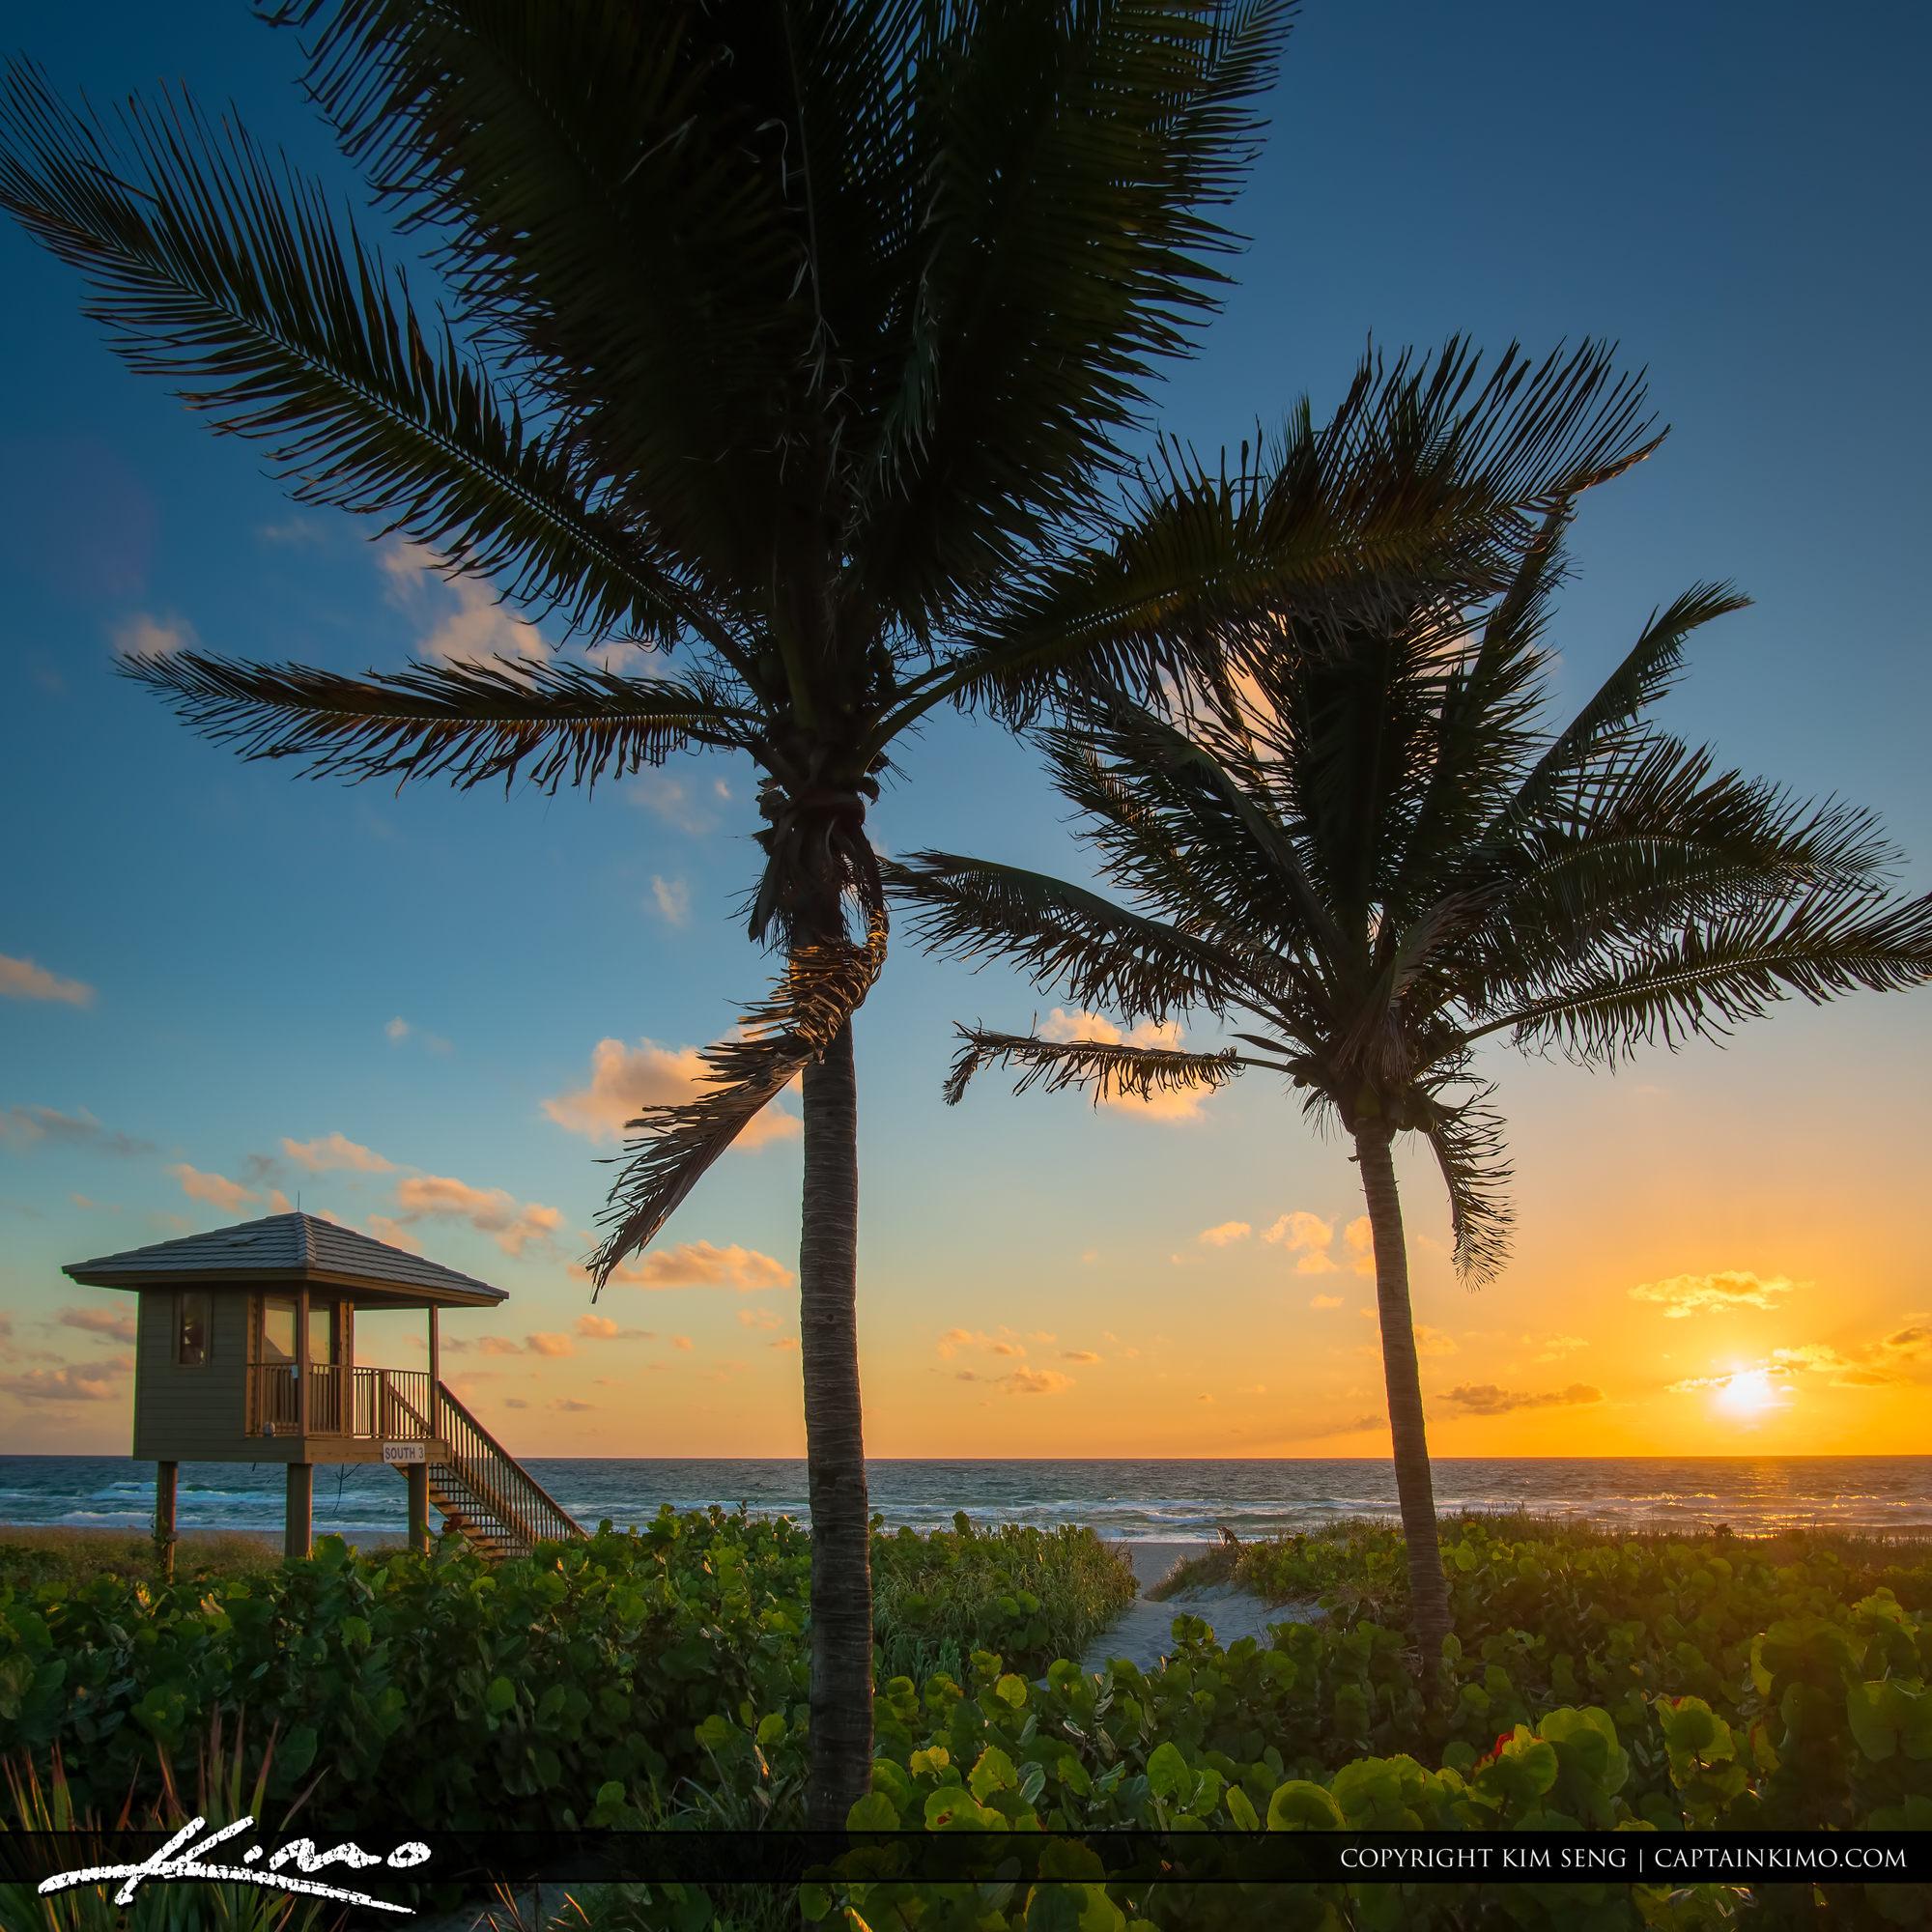 sunrise beach singles Browse our sunrise beach, mo single-family homes for sale view property photos and listing details of available homes on the market.